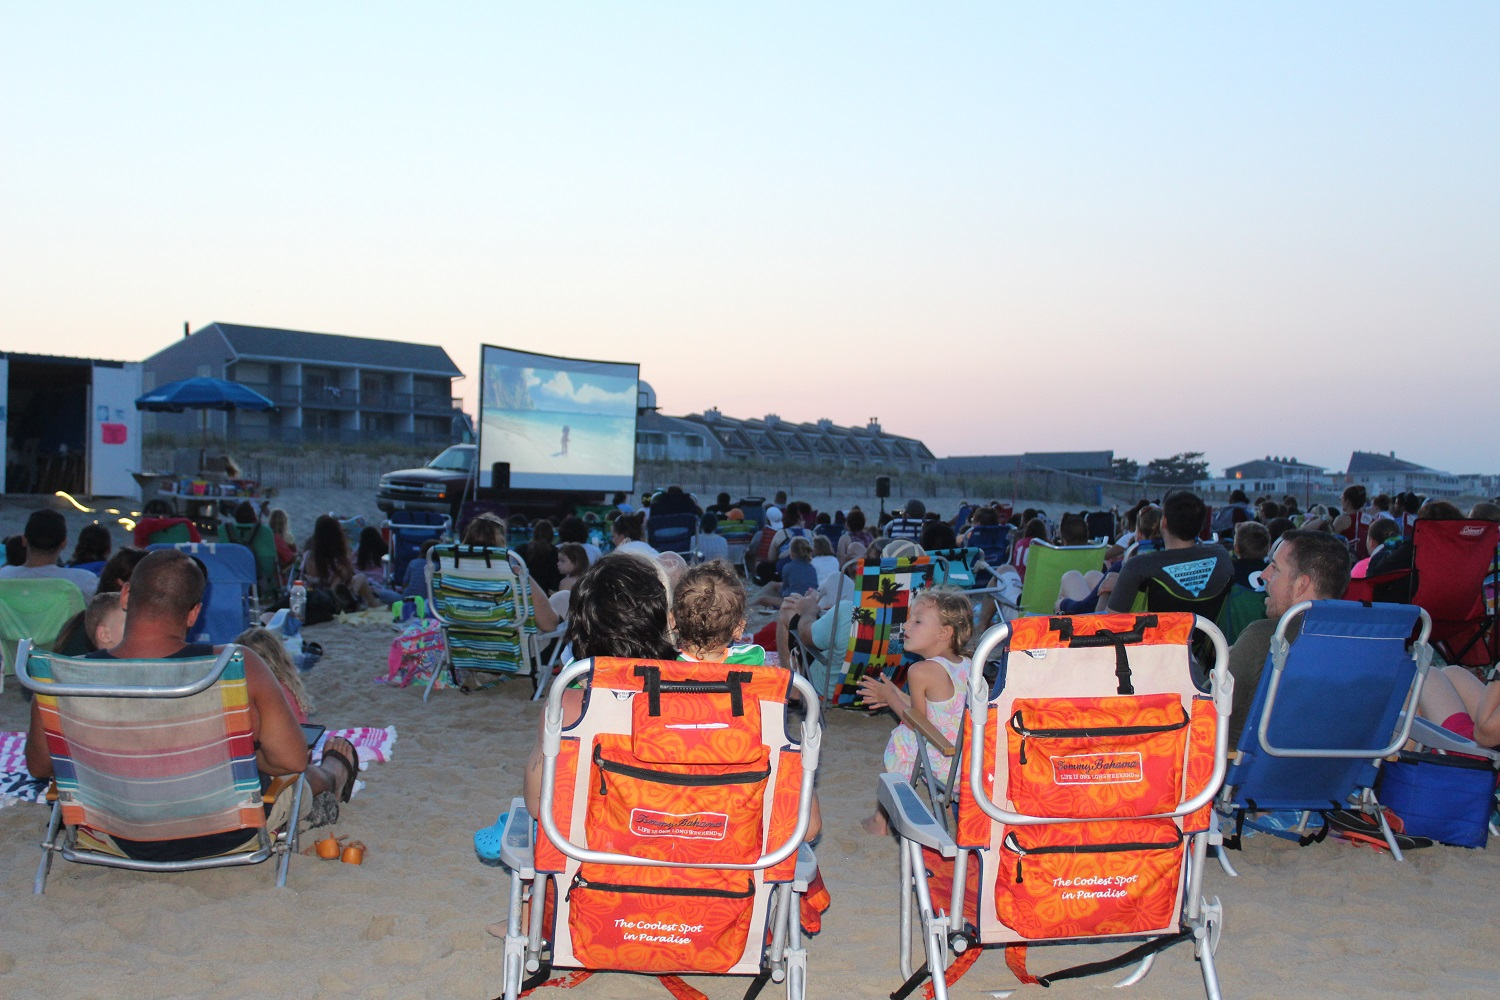 2018 Dewey Beach Movie Night - Moana